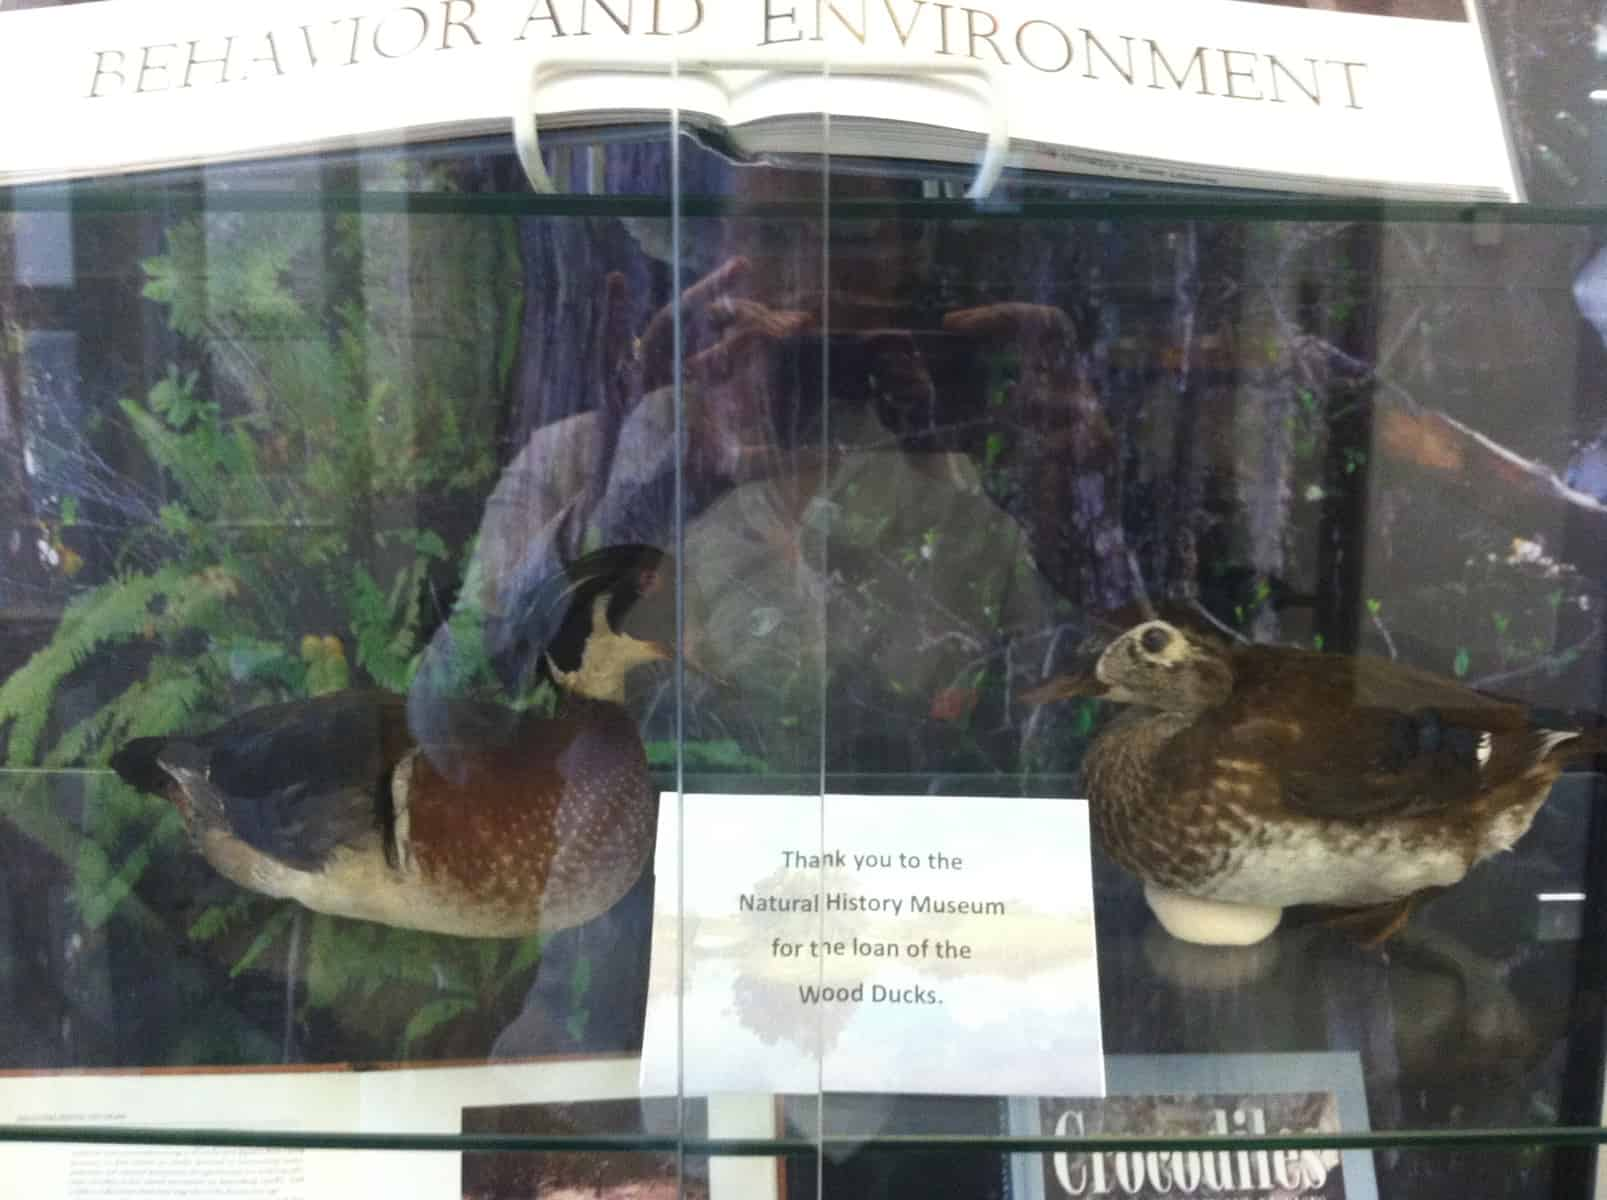 Wood ducks from the UI Museum of Natural History